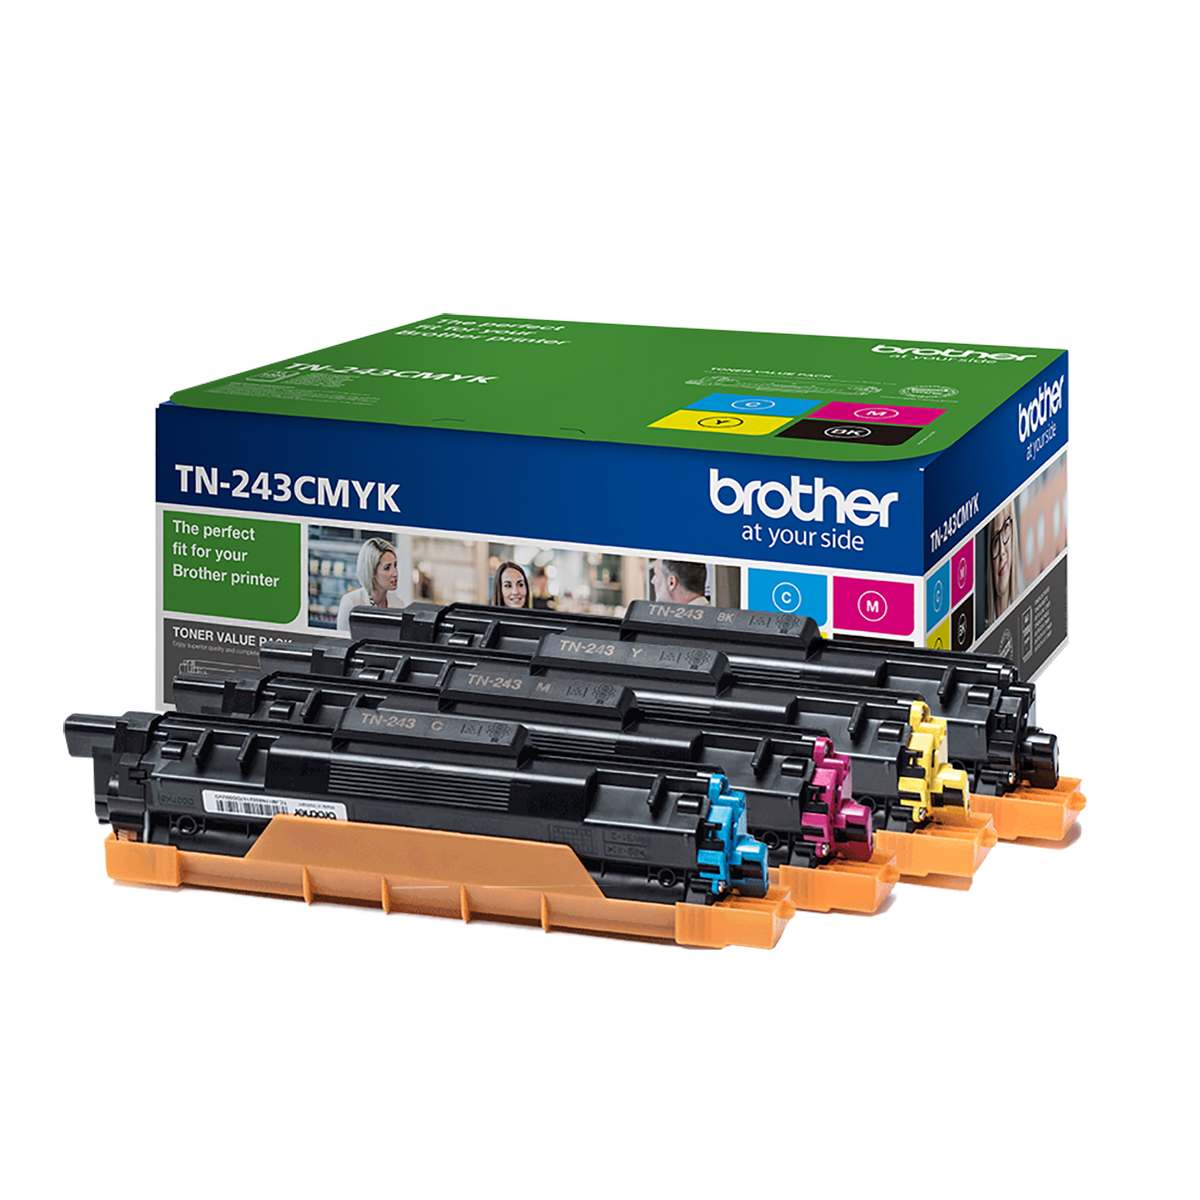 Brother TN-243CMYK Standard Toner Bundle